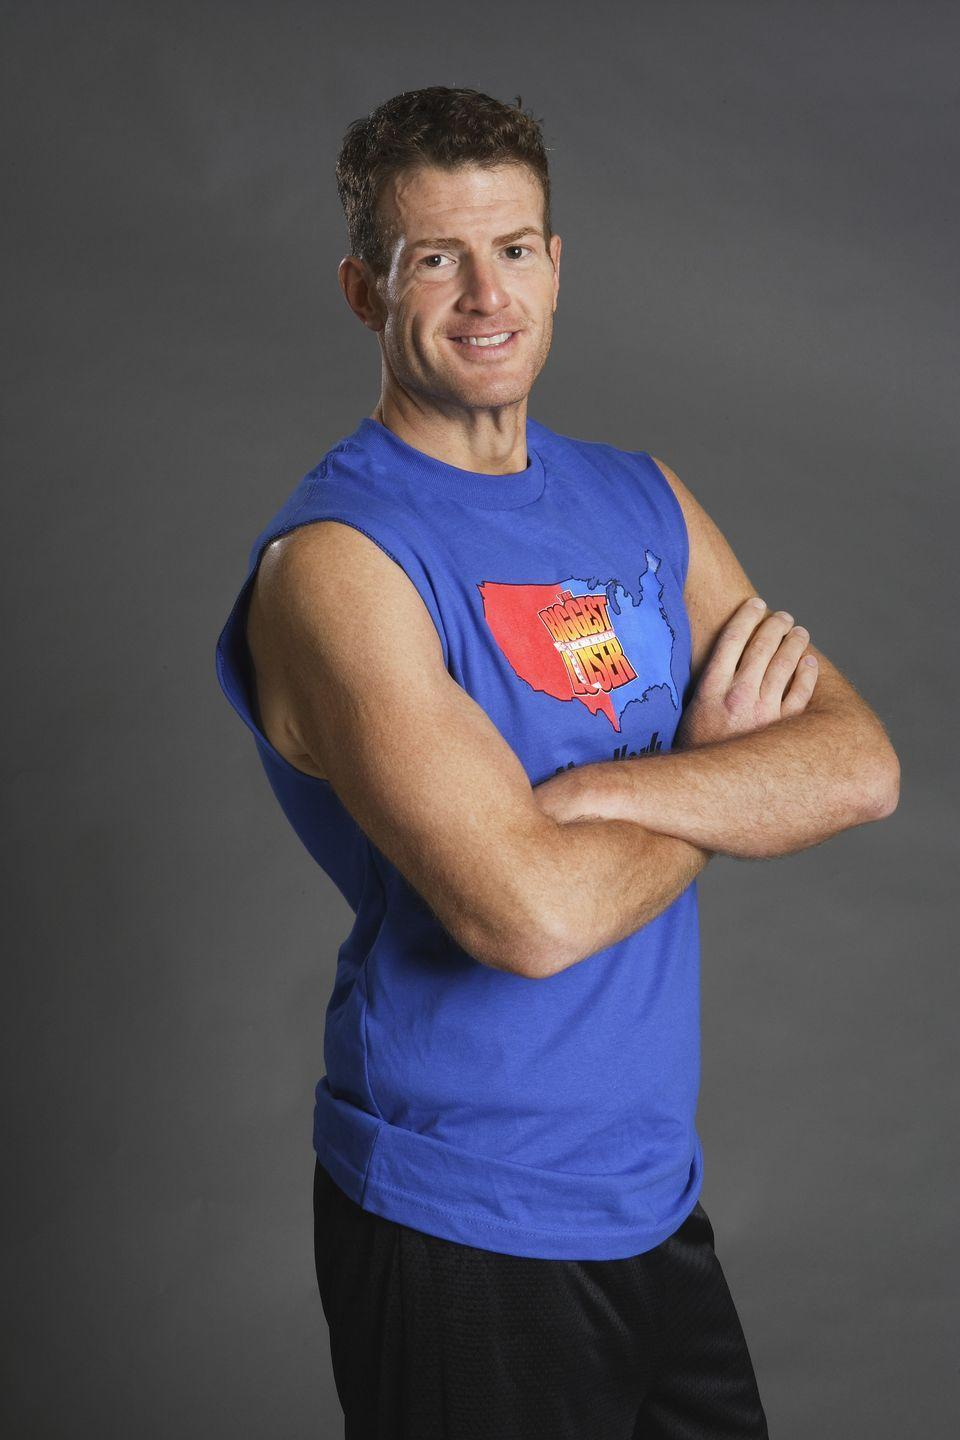 <p>Erik proved everyone wrong: He lost 214 pounds, which was nearly 53 percent of his body weight. Erik later went on to become a motivational speaker.</p>